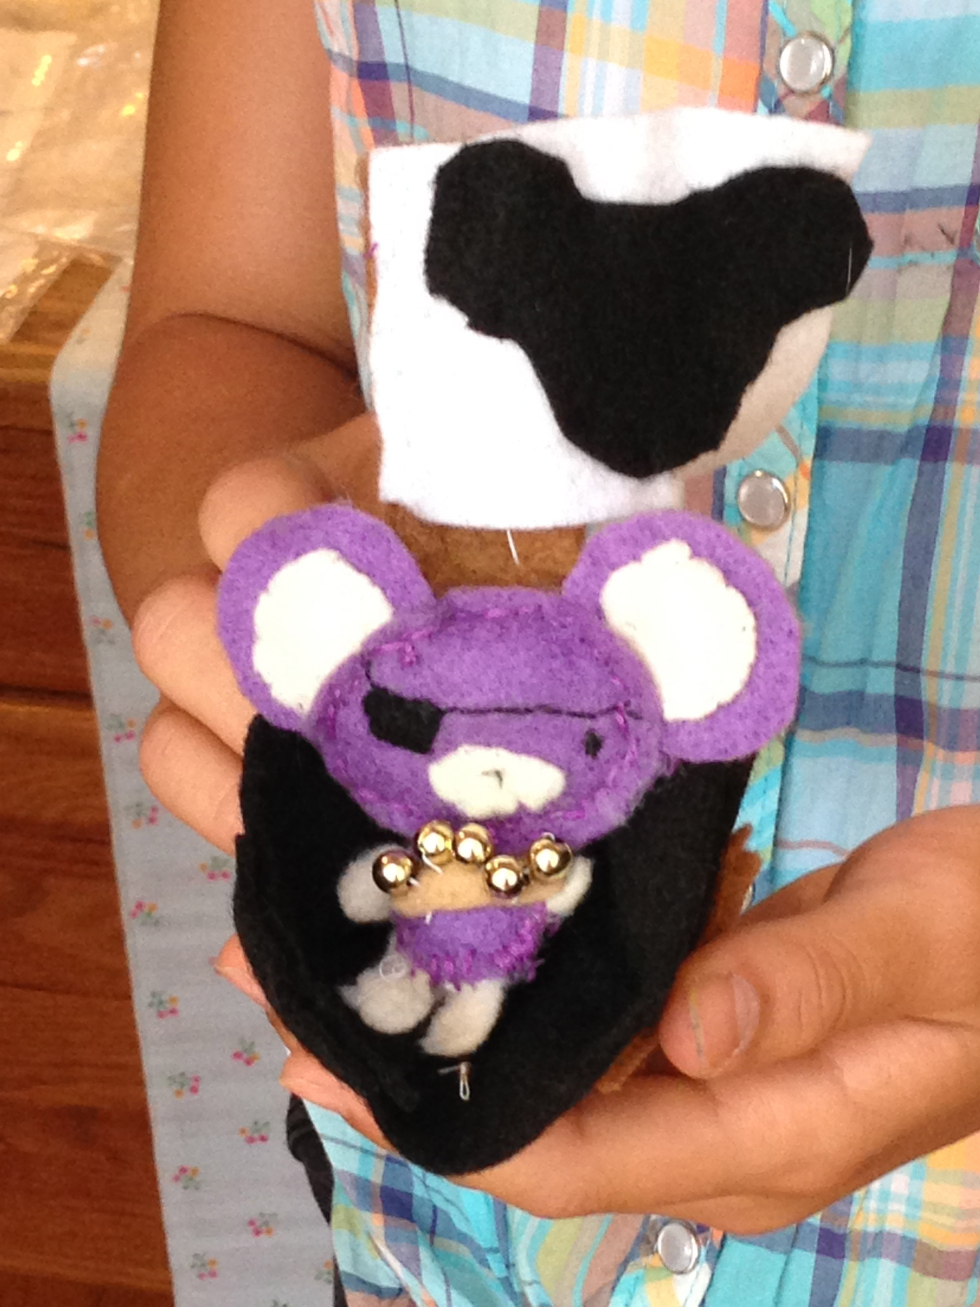 5th grader tiny pirate mouse needs a pirate ship!